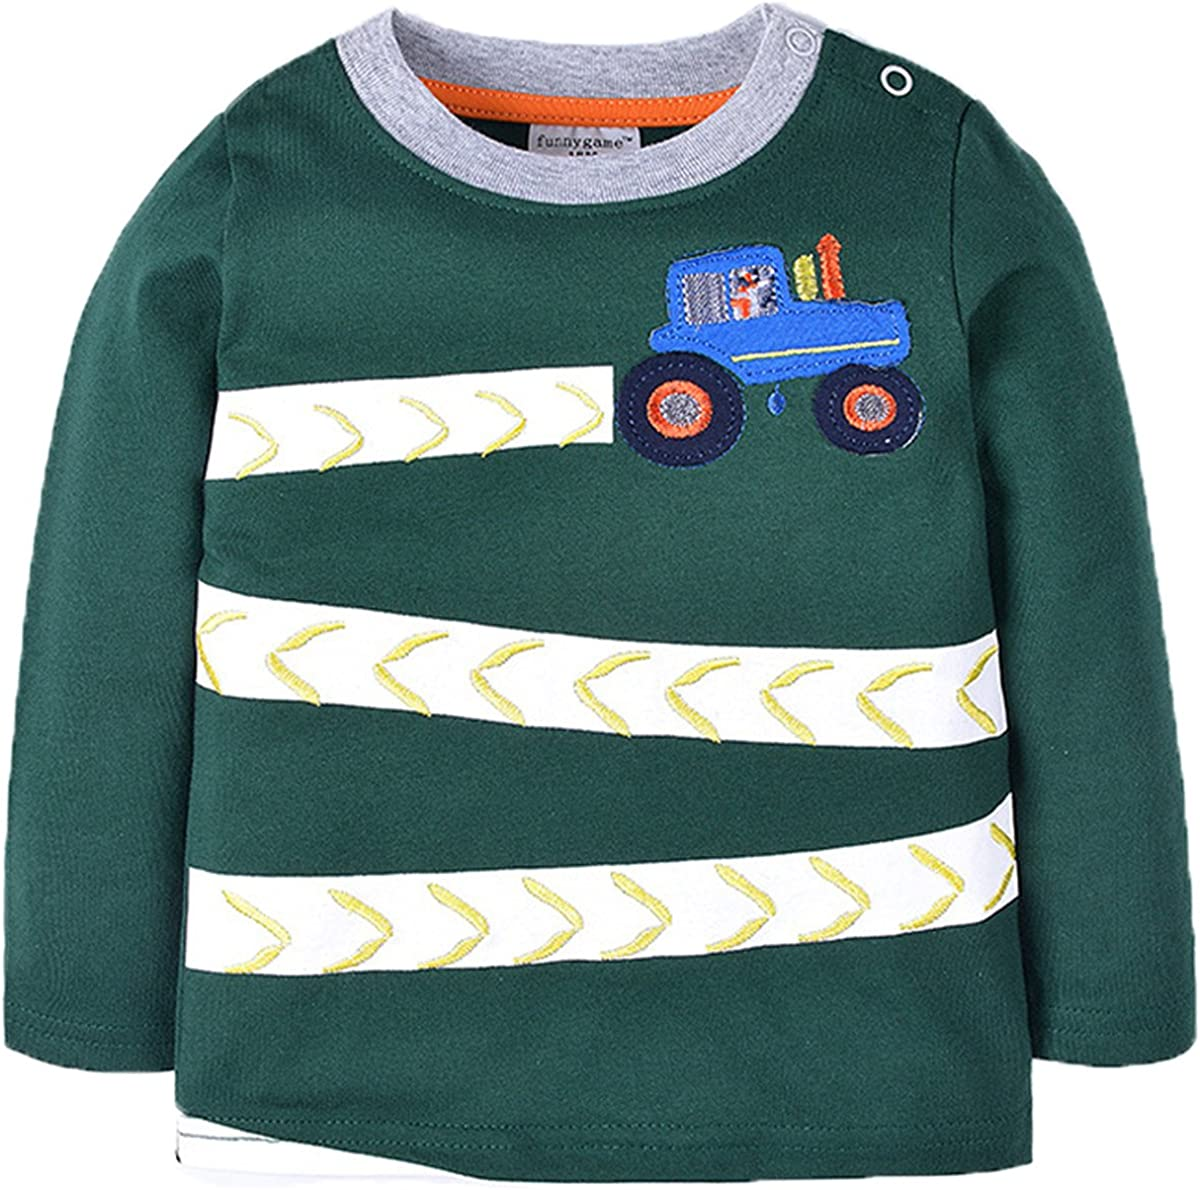 REWANGOING 3 Pack of Baby Boys Girls Long Sleeve Cotton Crewneck Cartoon T-Shirt Tops Blouse